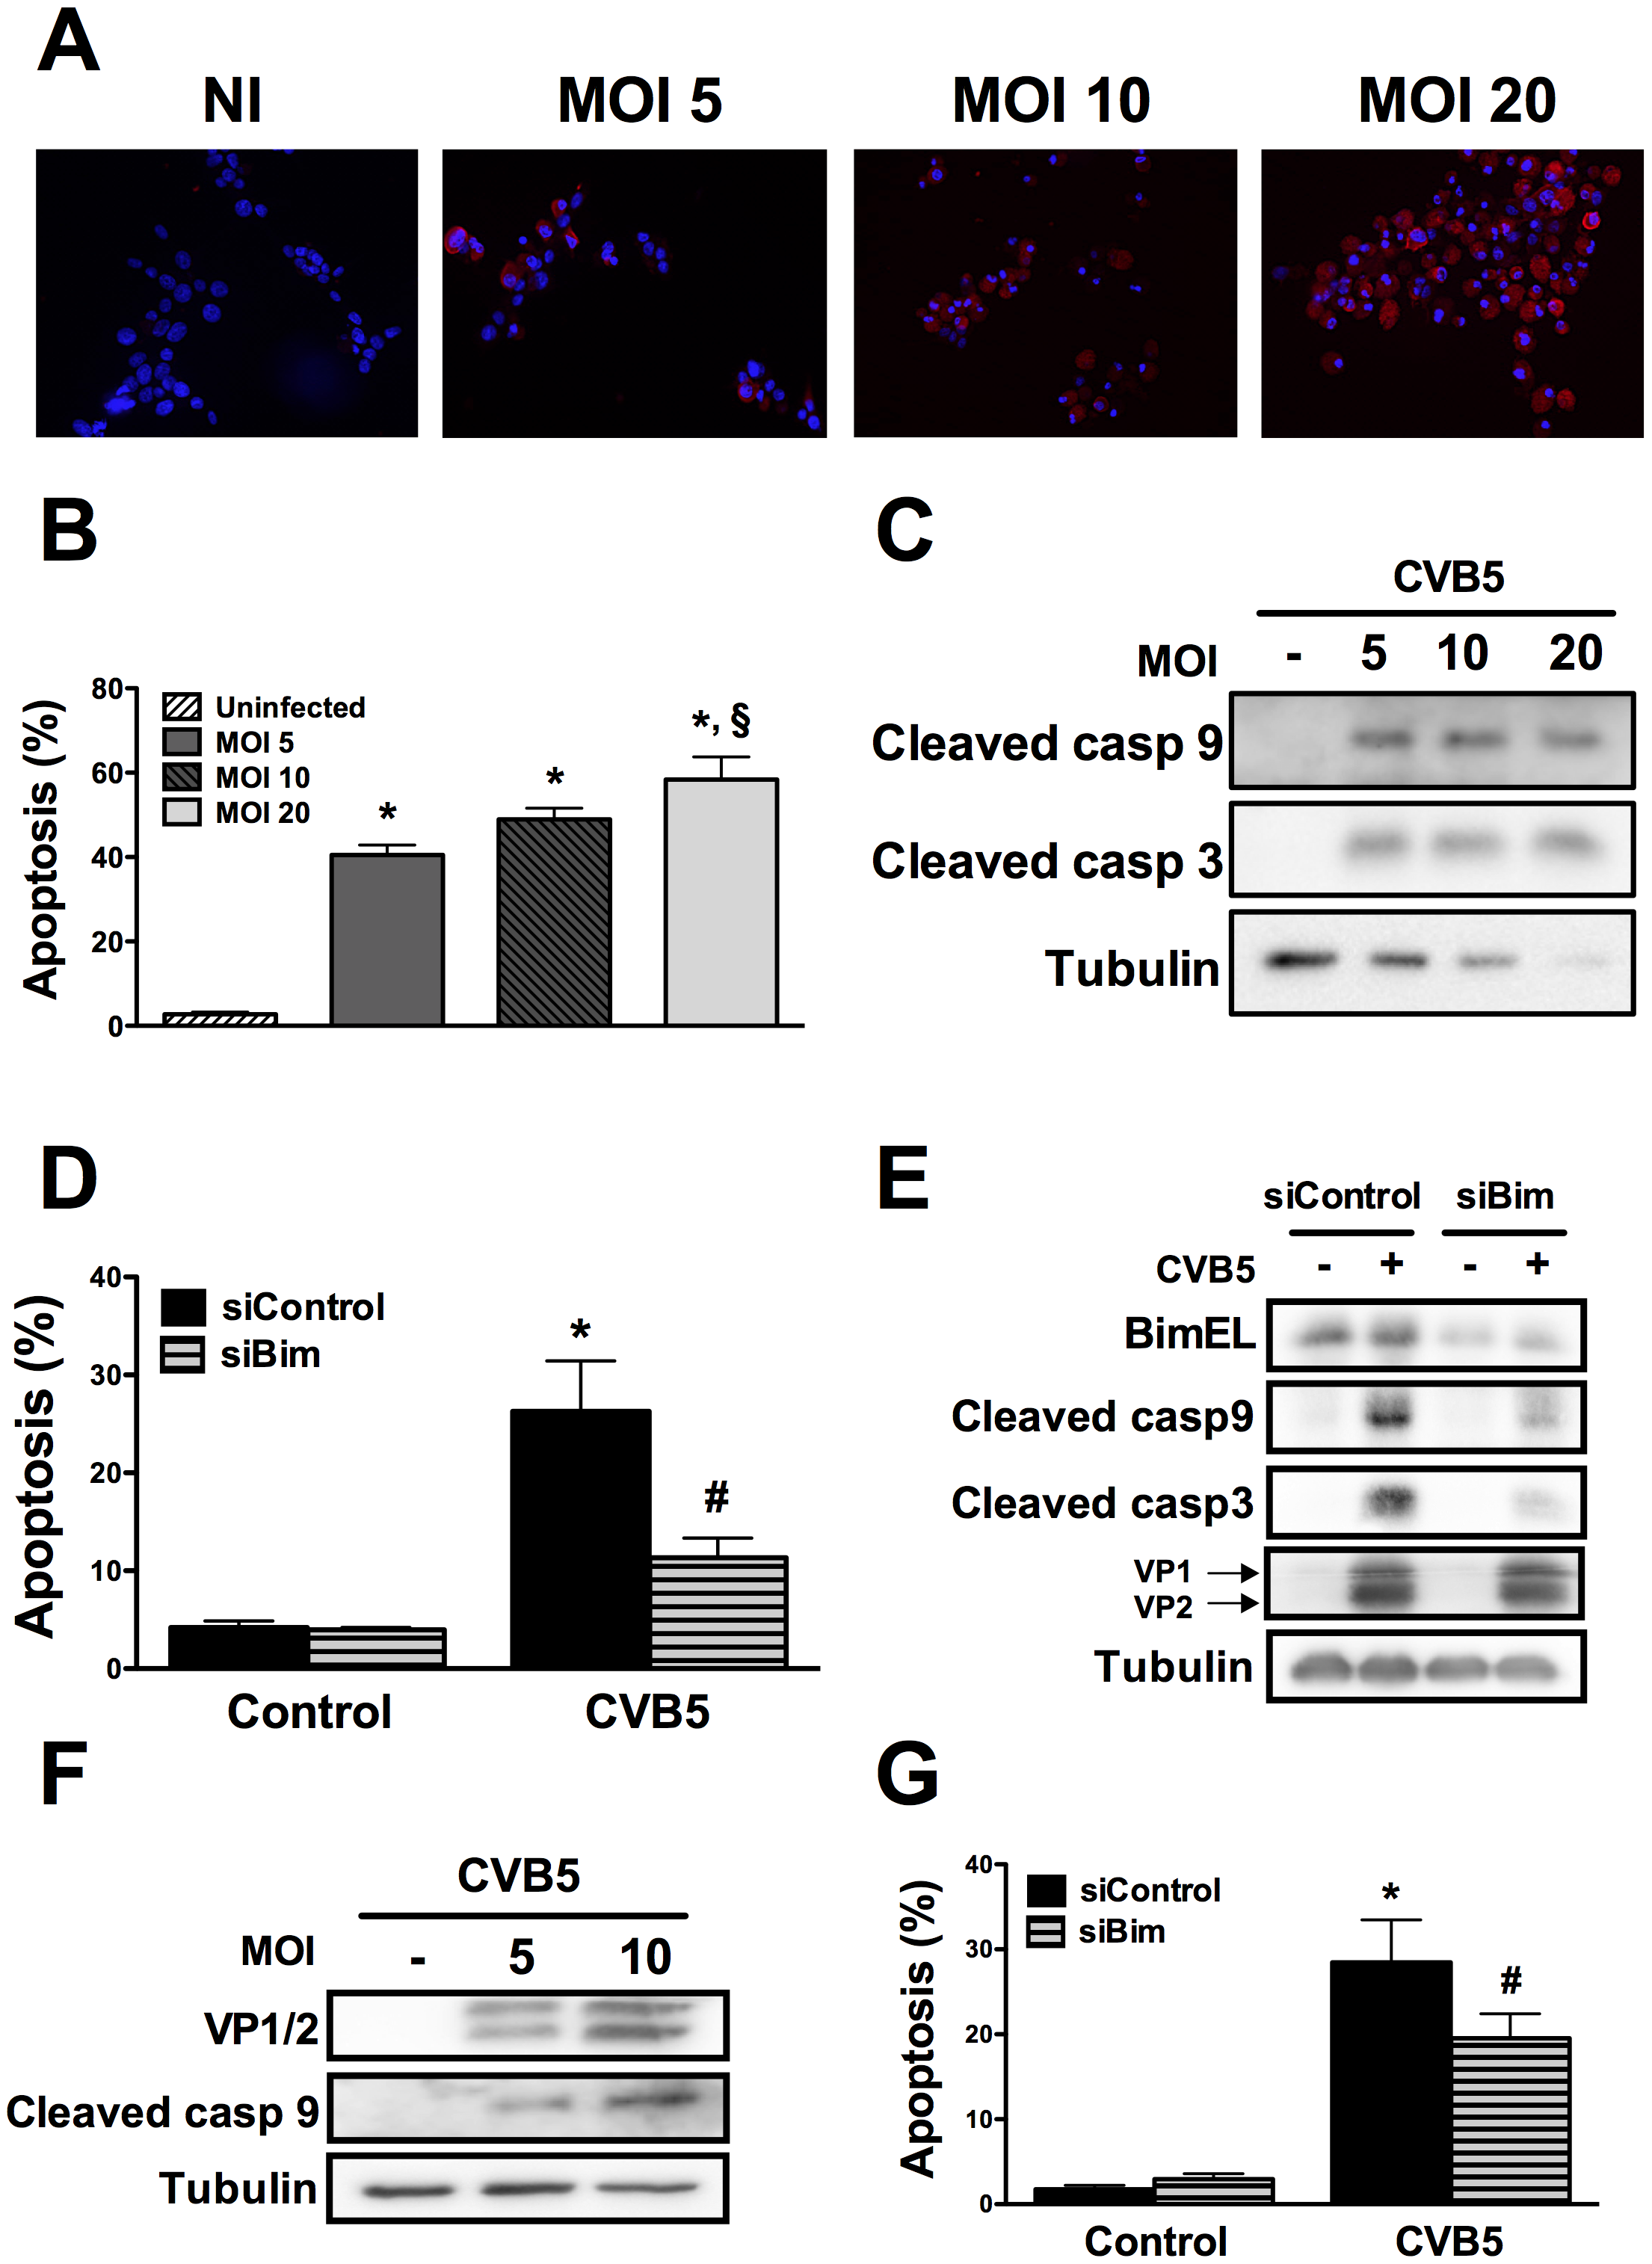 CVB5 infection induces apoptosis in beta cells via the BH3-only protein Bim.